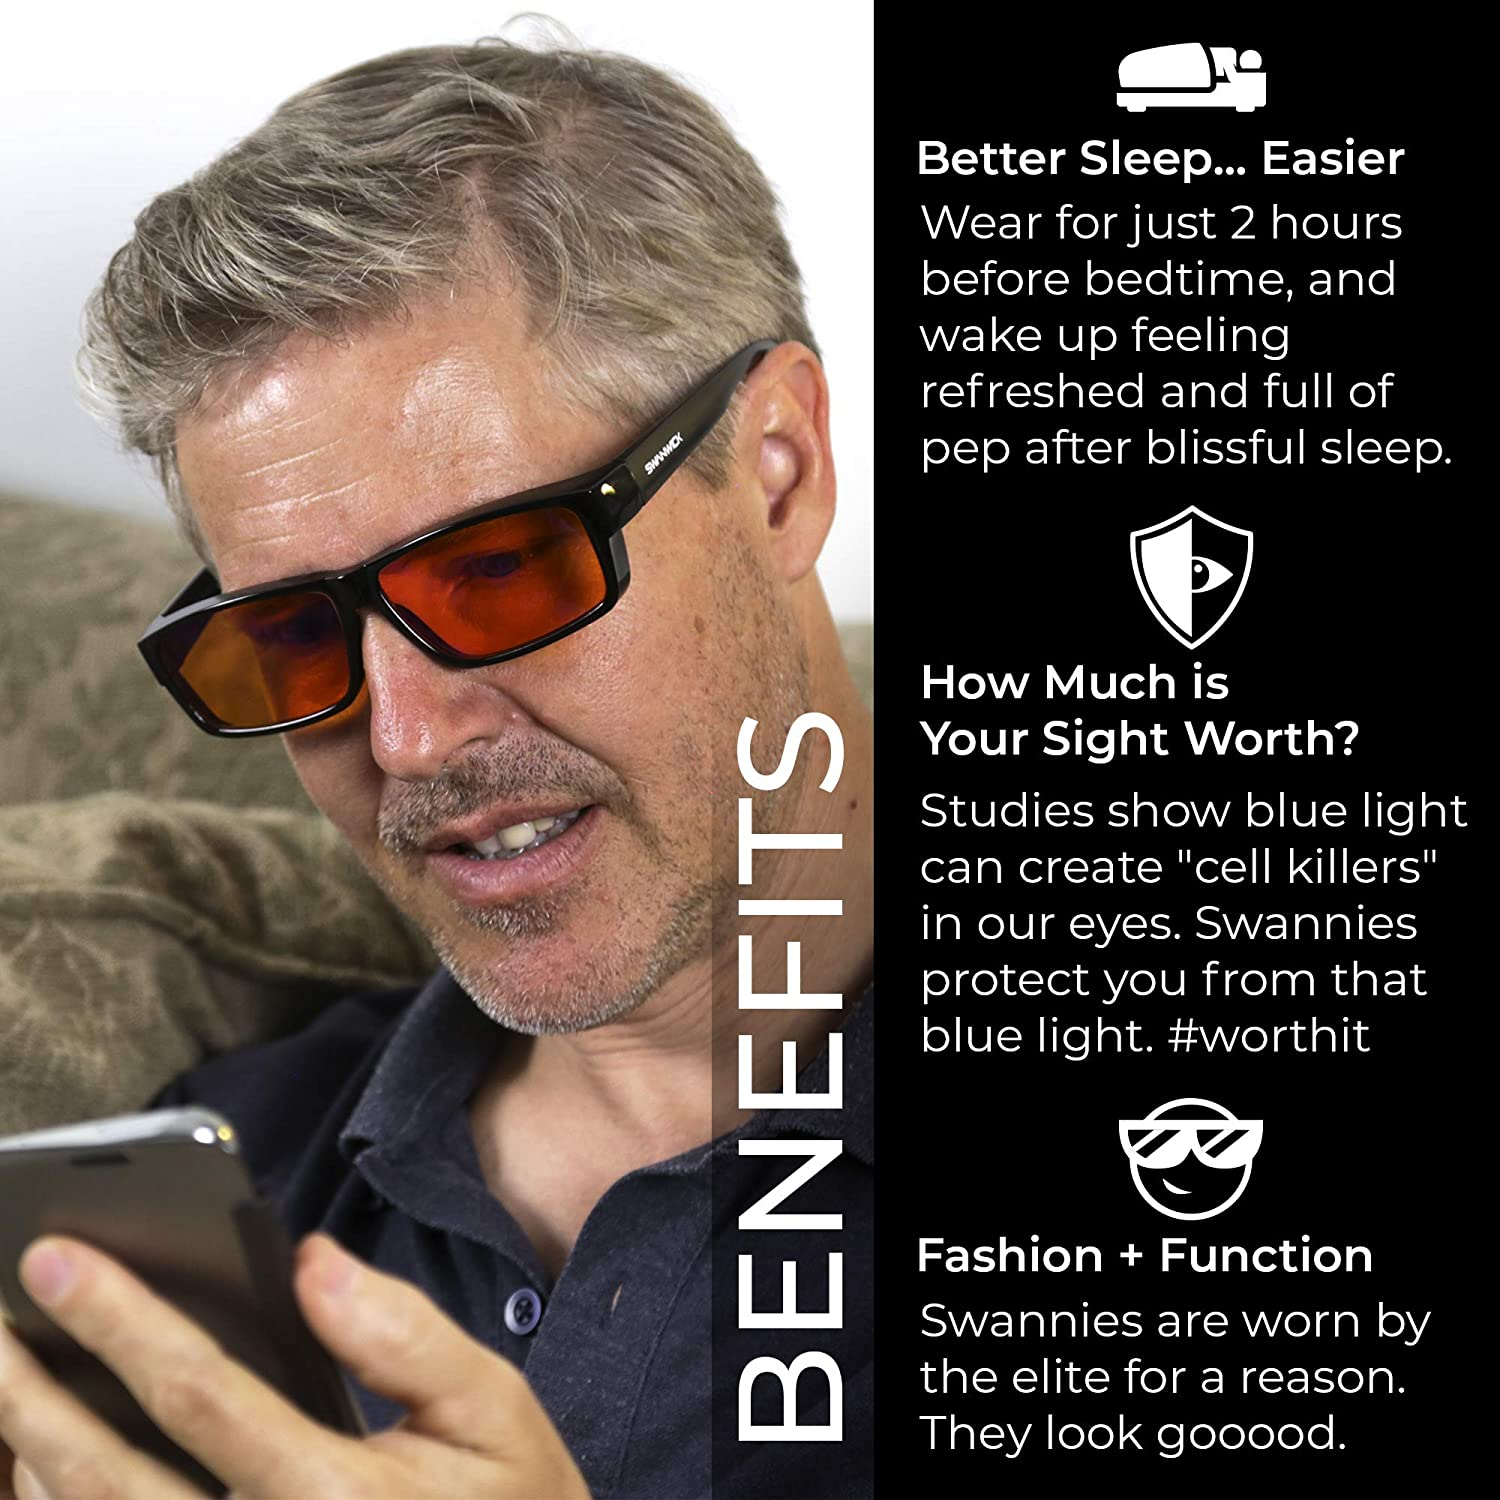 eb5b7fea4c01 Swanwick Sleep Fitover Blue Light Blocking Glasses and Computer Eyewear -  Wear OVER your Prescription Glasses or Readers ...  Amazon.co.uk  Health ...